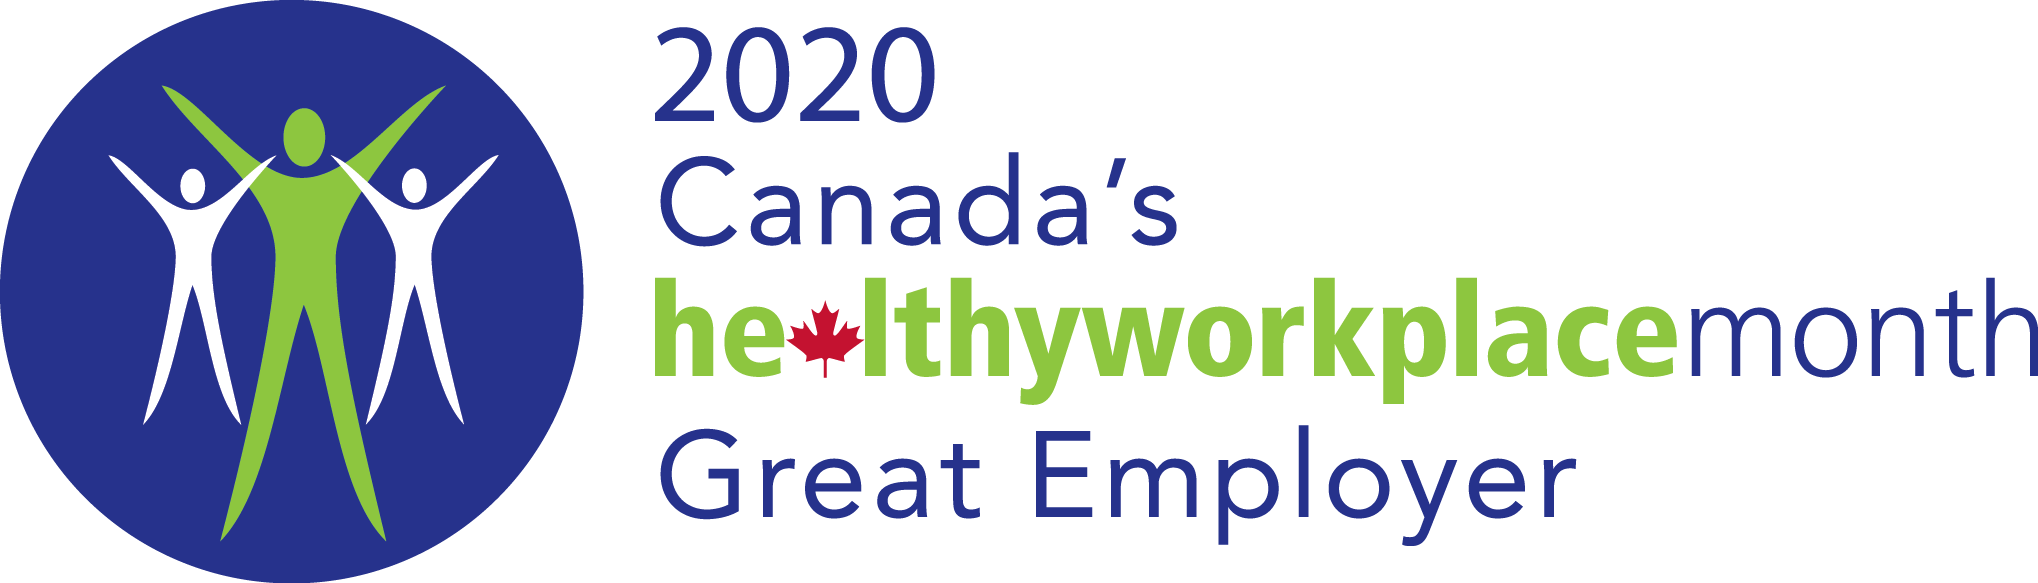 2020 Canada's Healthworkplace Month Great Employer